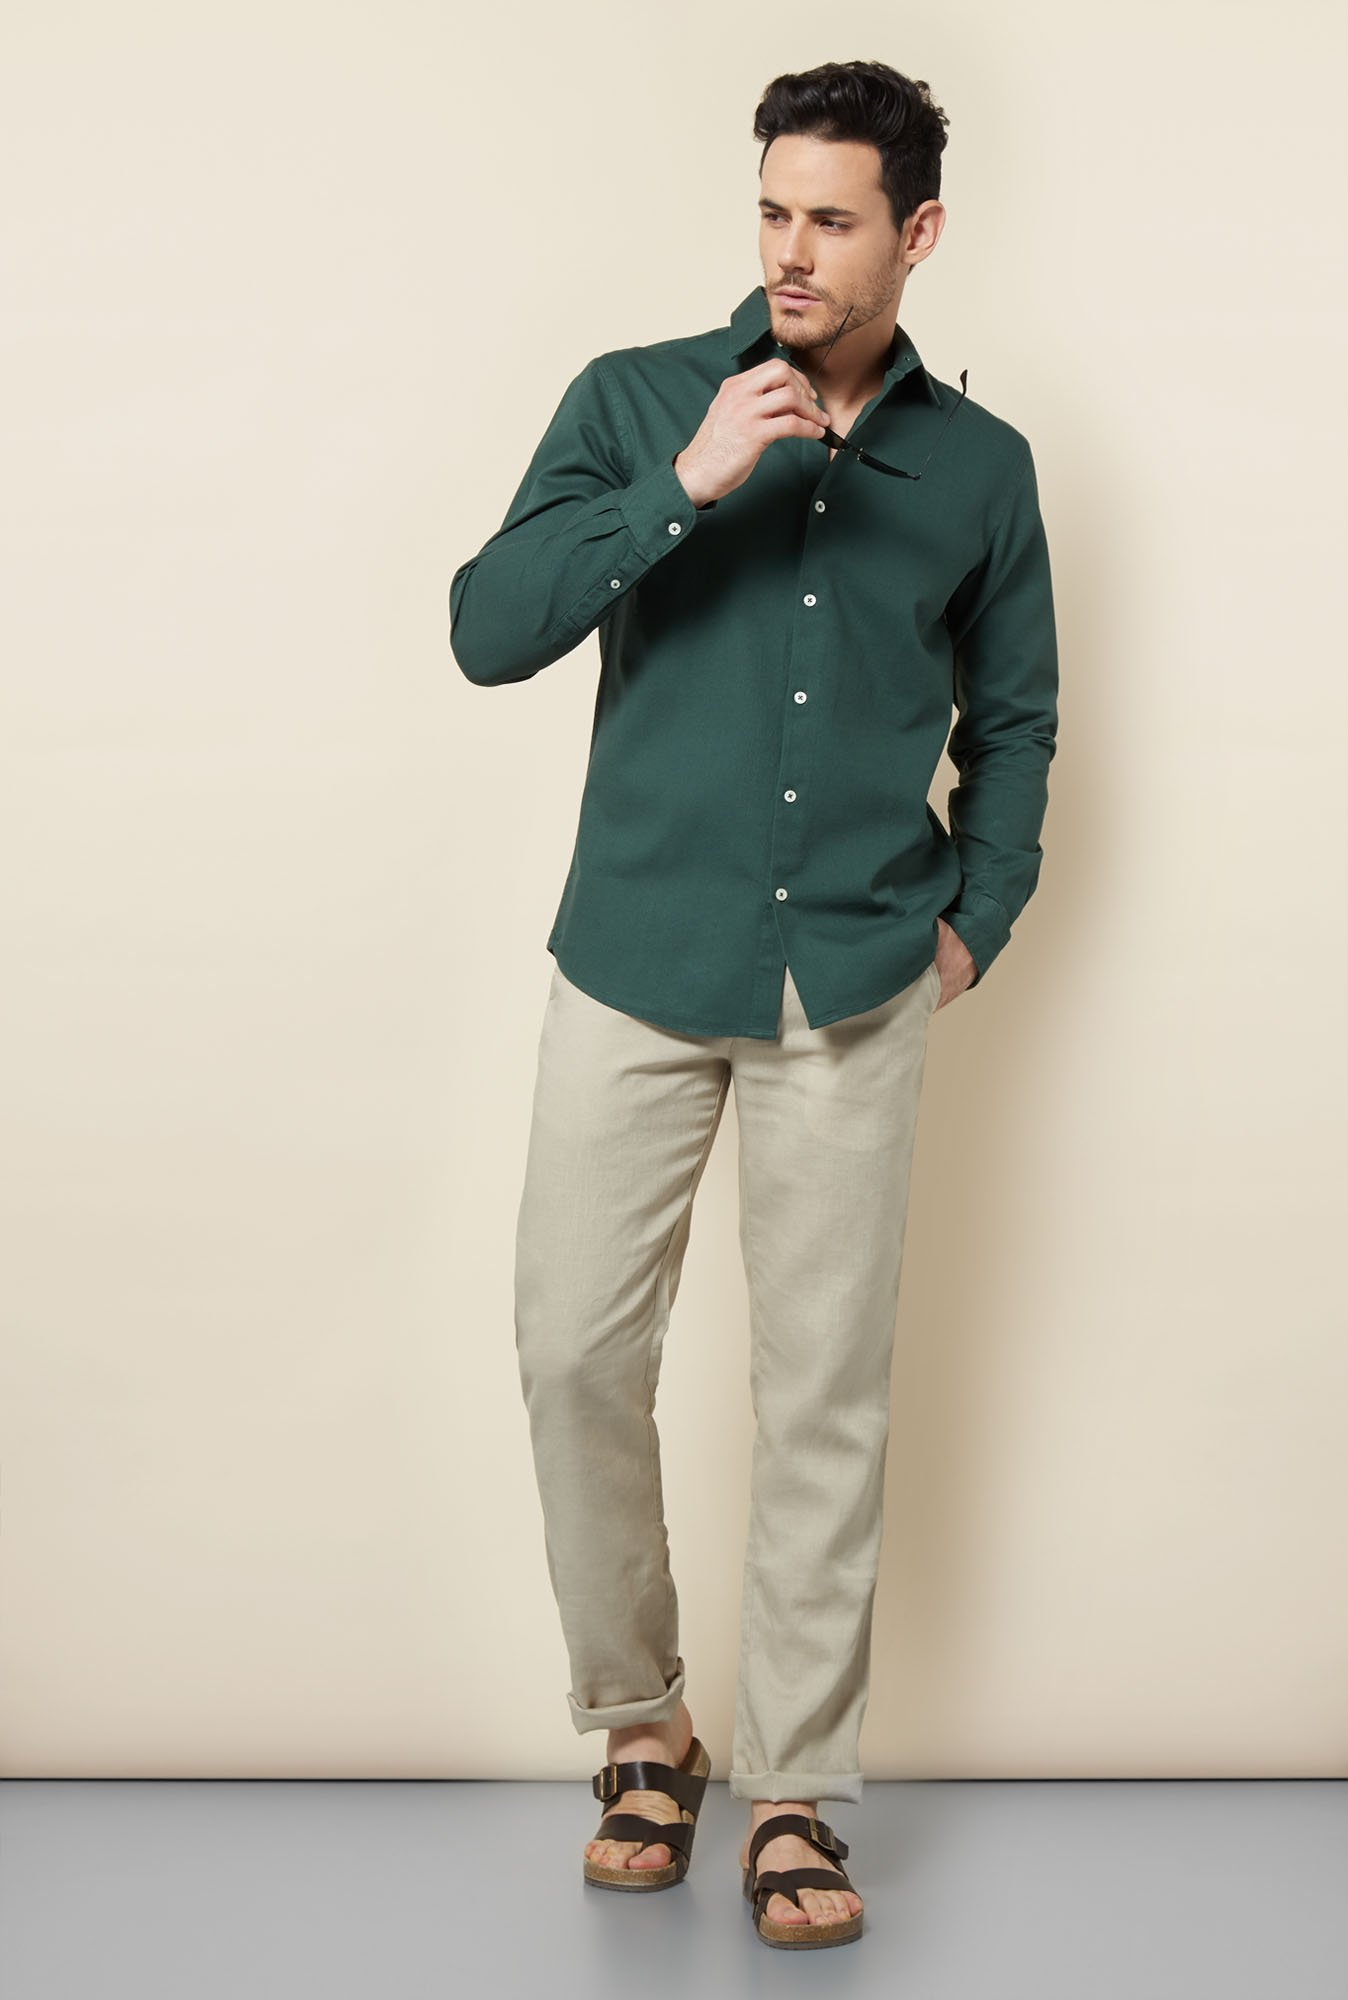 Cottonworld Green Solid Casual Shirt